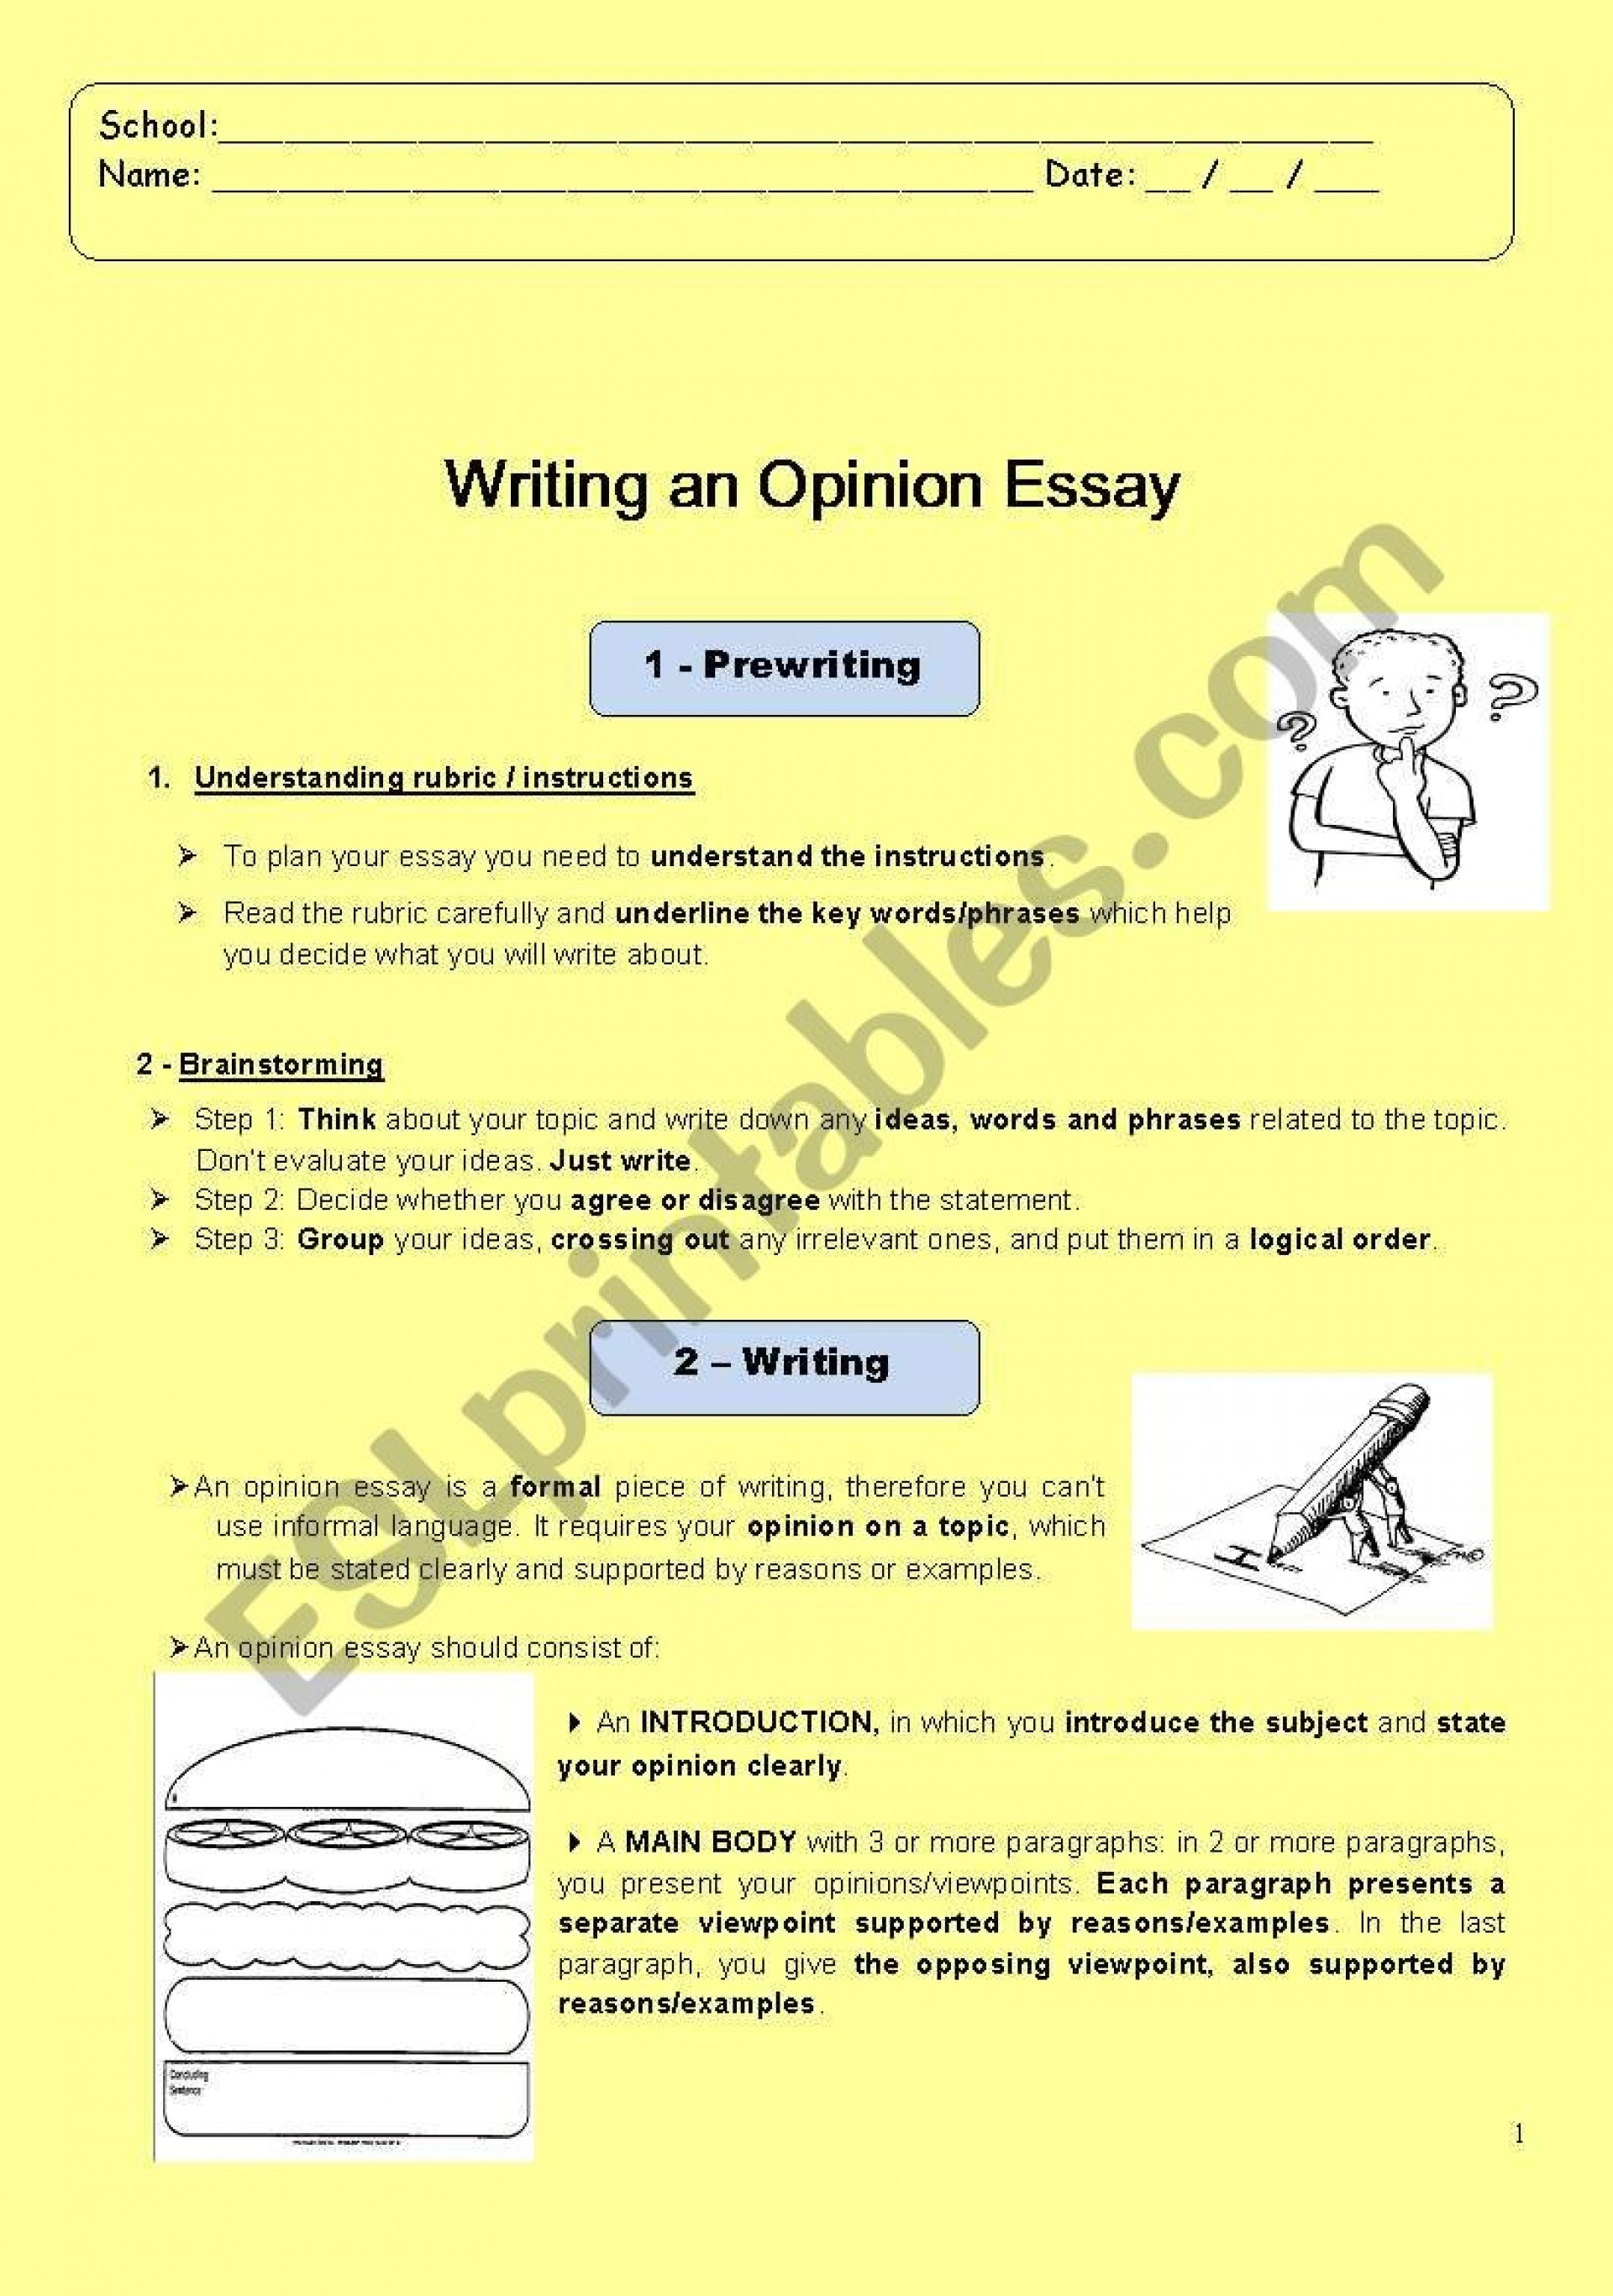 014 How To Write An Opinion Essay 519469 1 Unbelievable 4th Grade On A Book Conclusion 1920